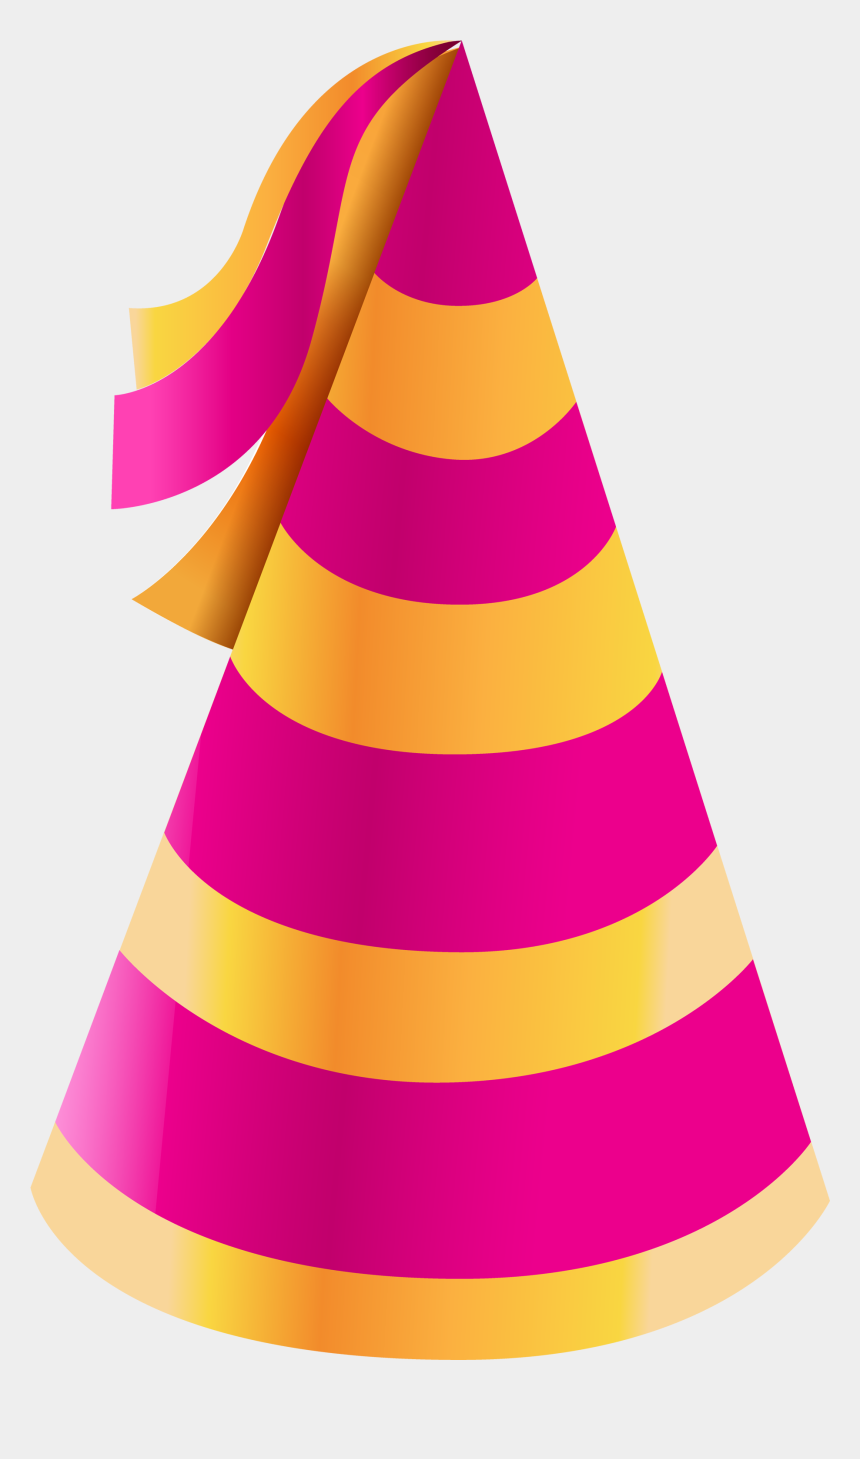 party hat clipart, Cartoons - Birthday Party Transparent Png Pictures - Real Party Hat Png